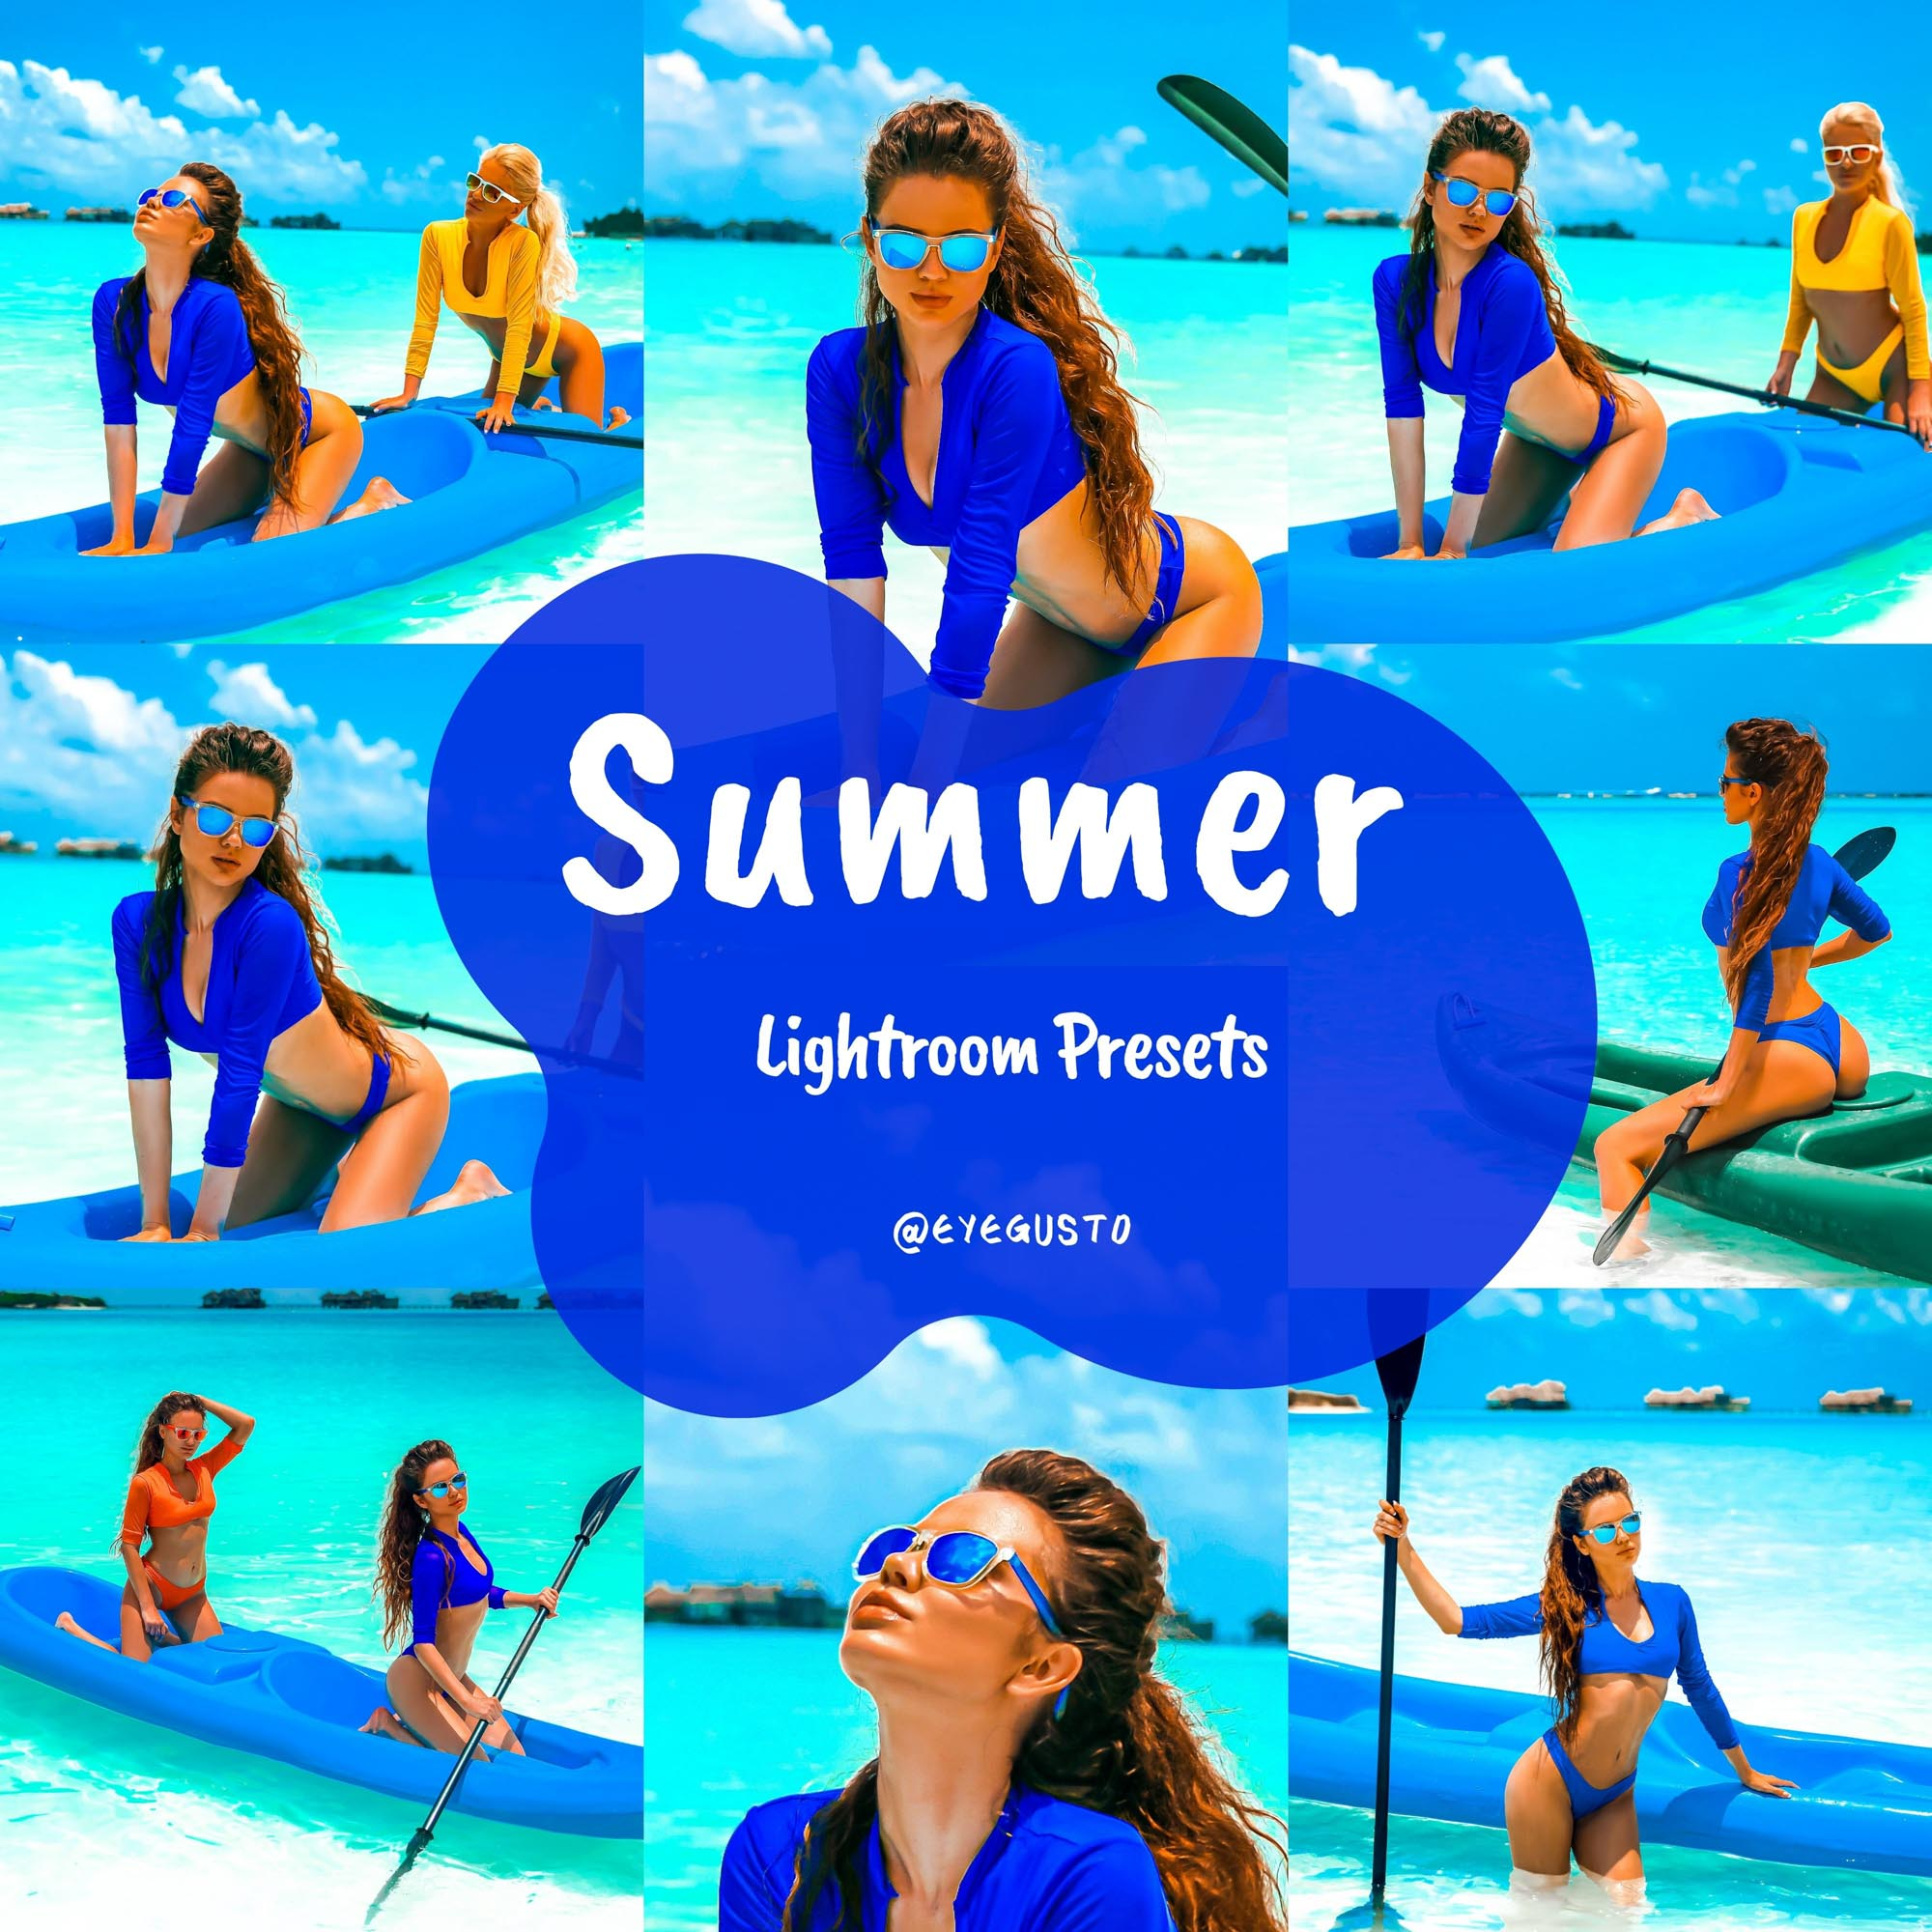 Summer Lightroom Presets Beach Instagram Mobile